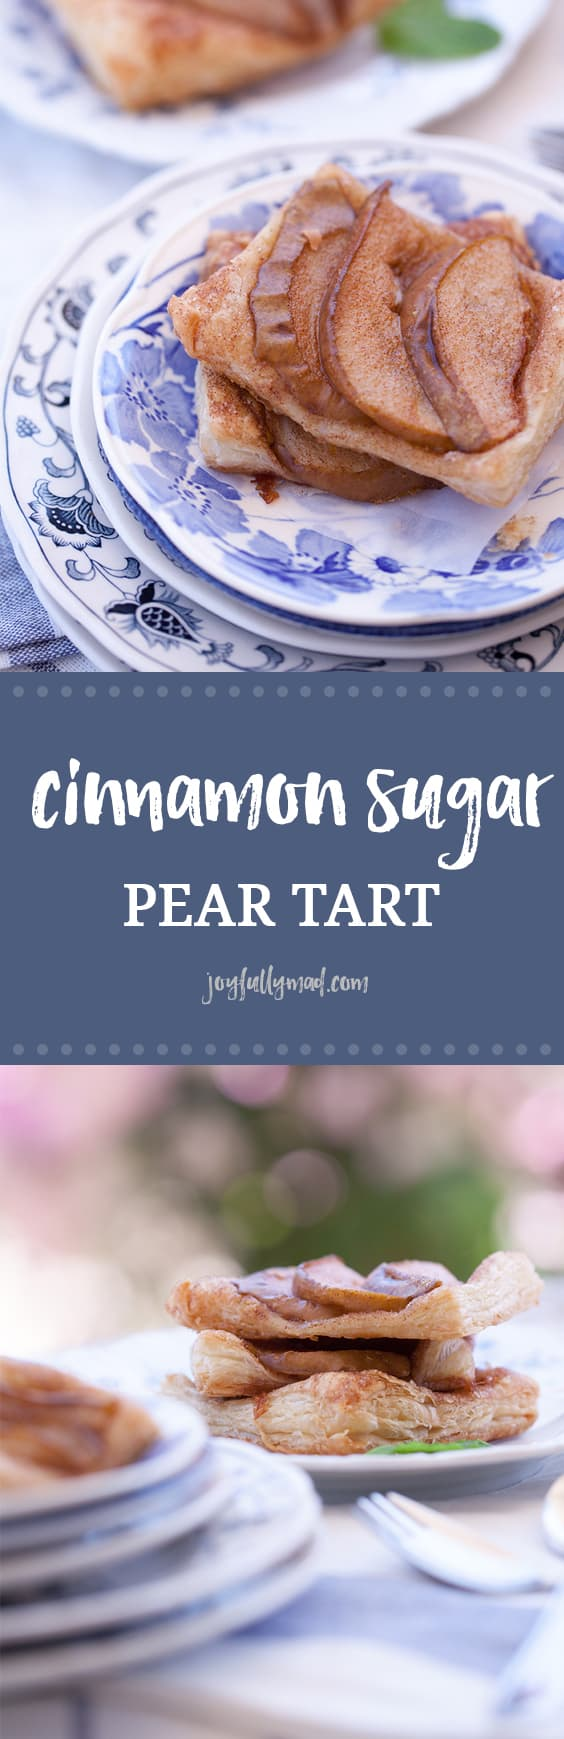 This cinnamon sugar pear tart is the perfect quick dessert idea. Just thaw a store bought pastry puff, season and add pears. Delicious dessert in under 30 minutes!